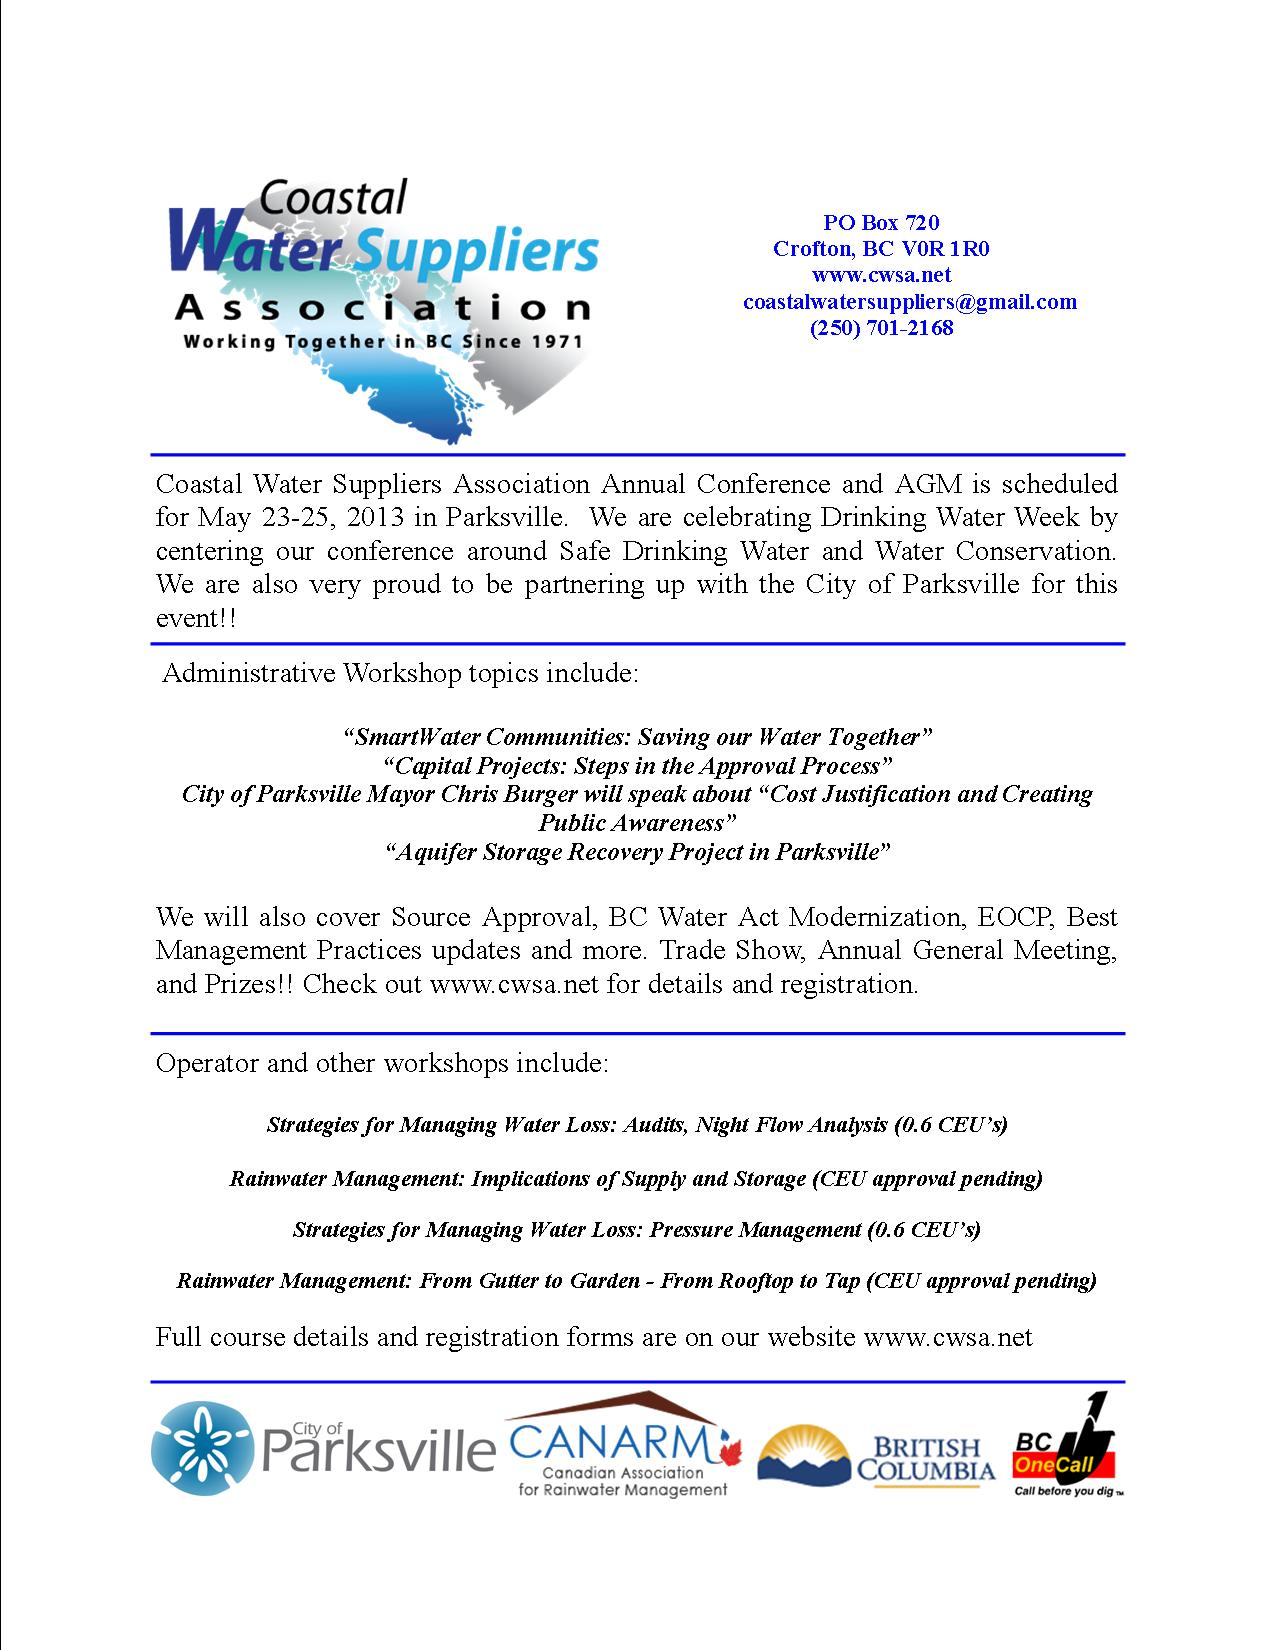 Feb 2013 CWSA Newsletter